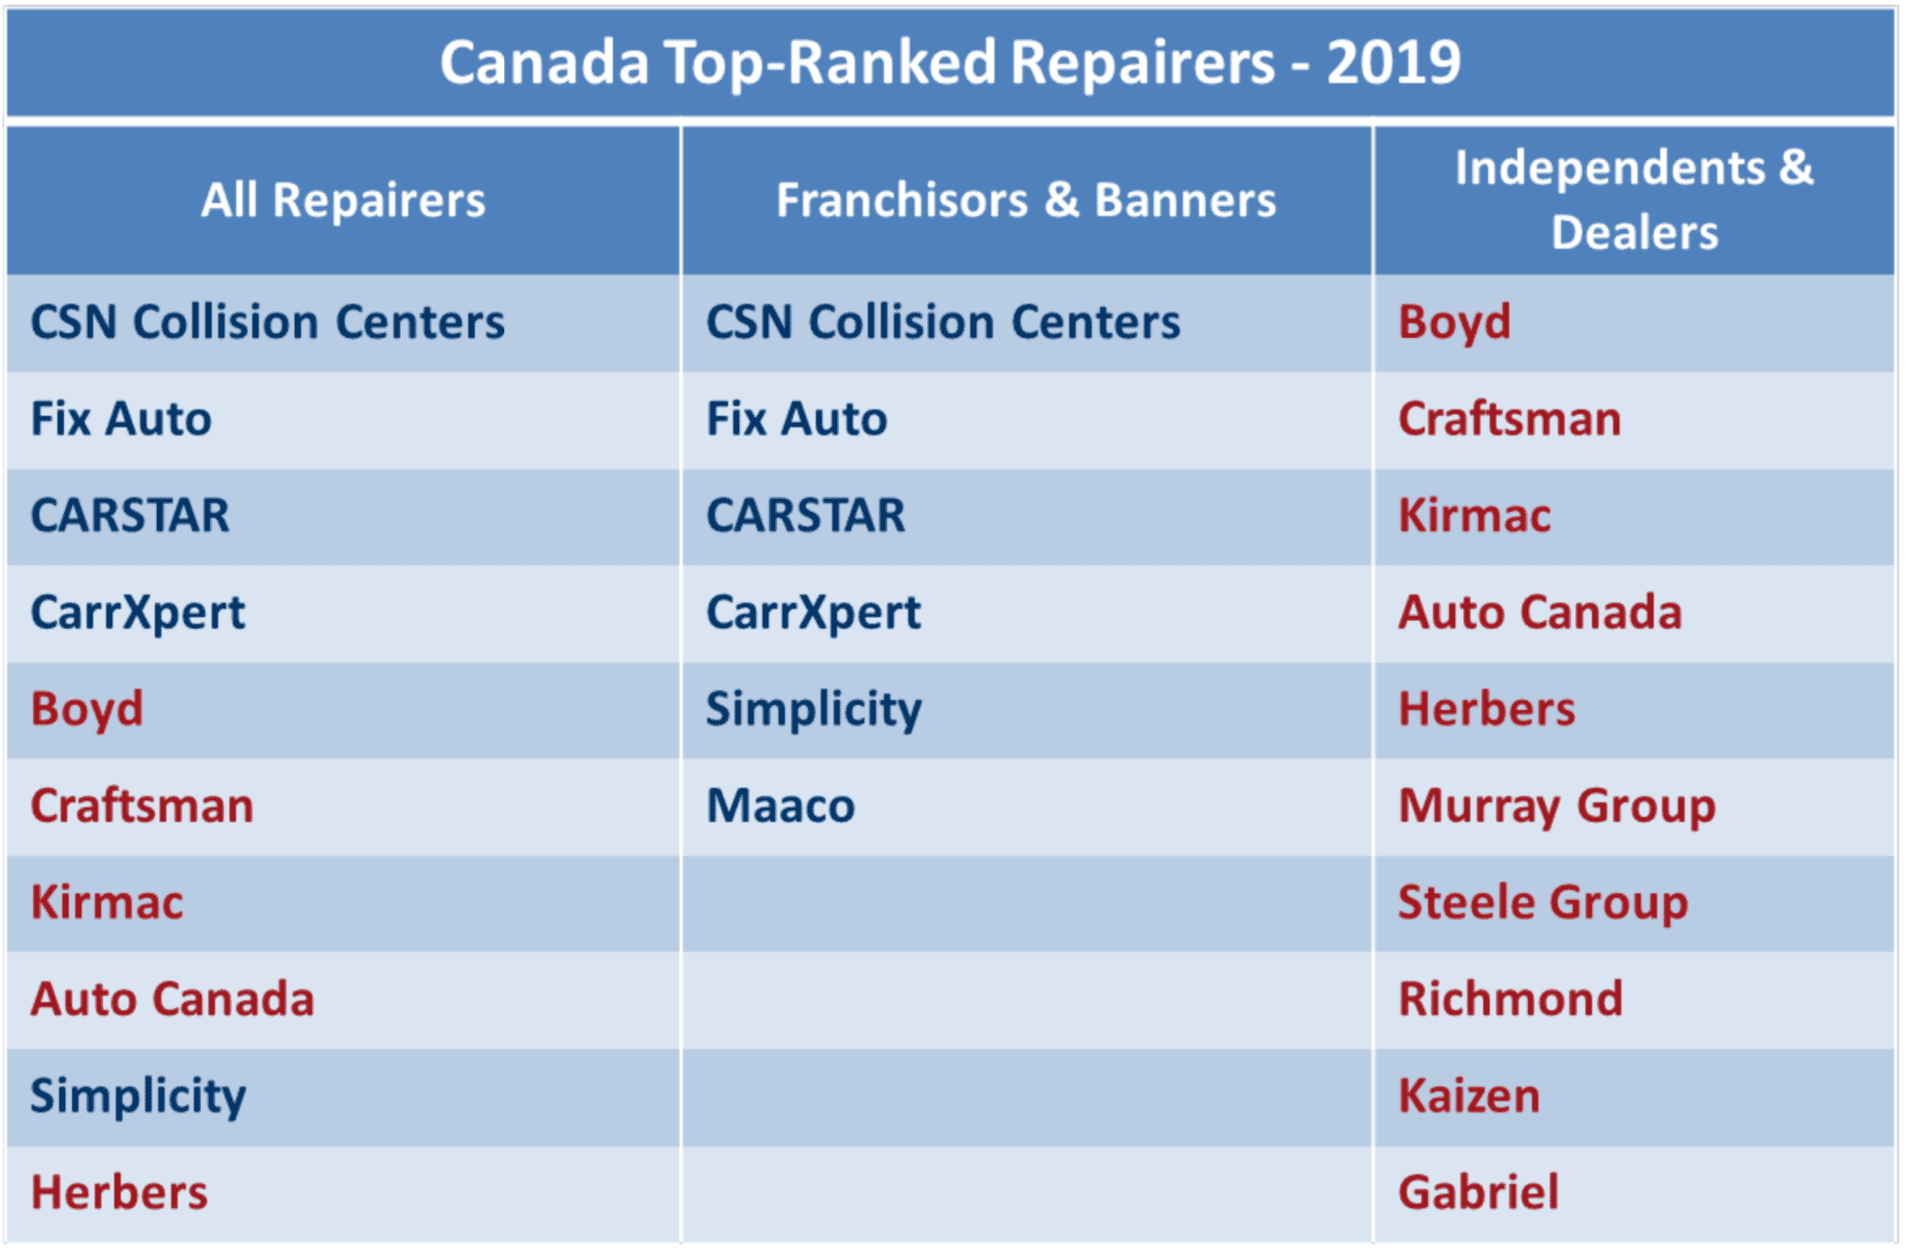 Canada Top-Ranked Repairers 2019